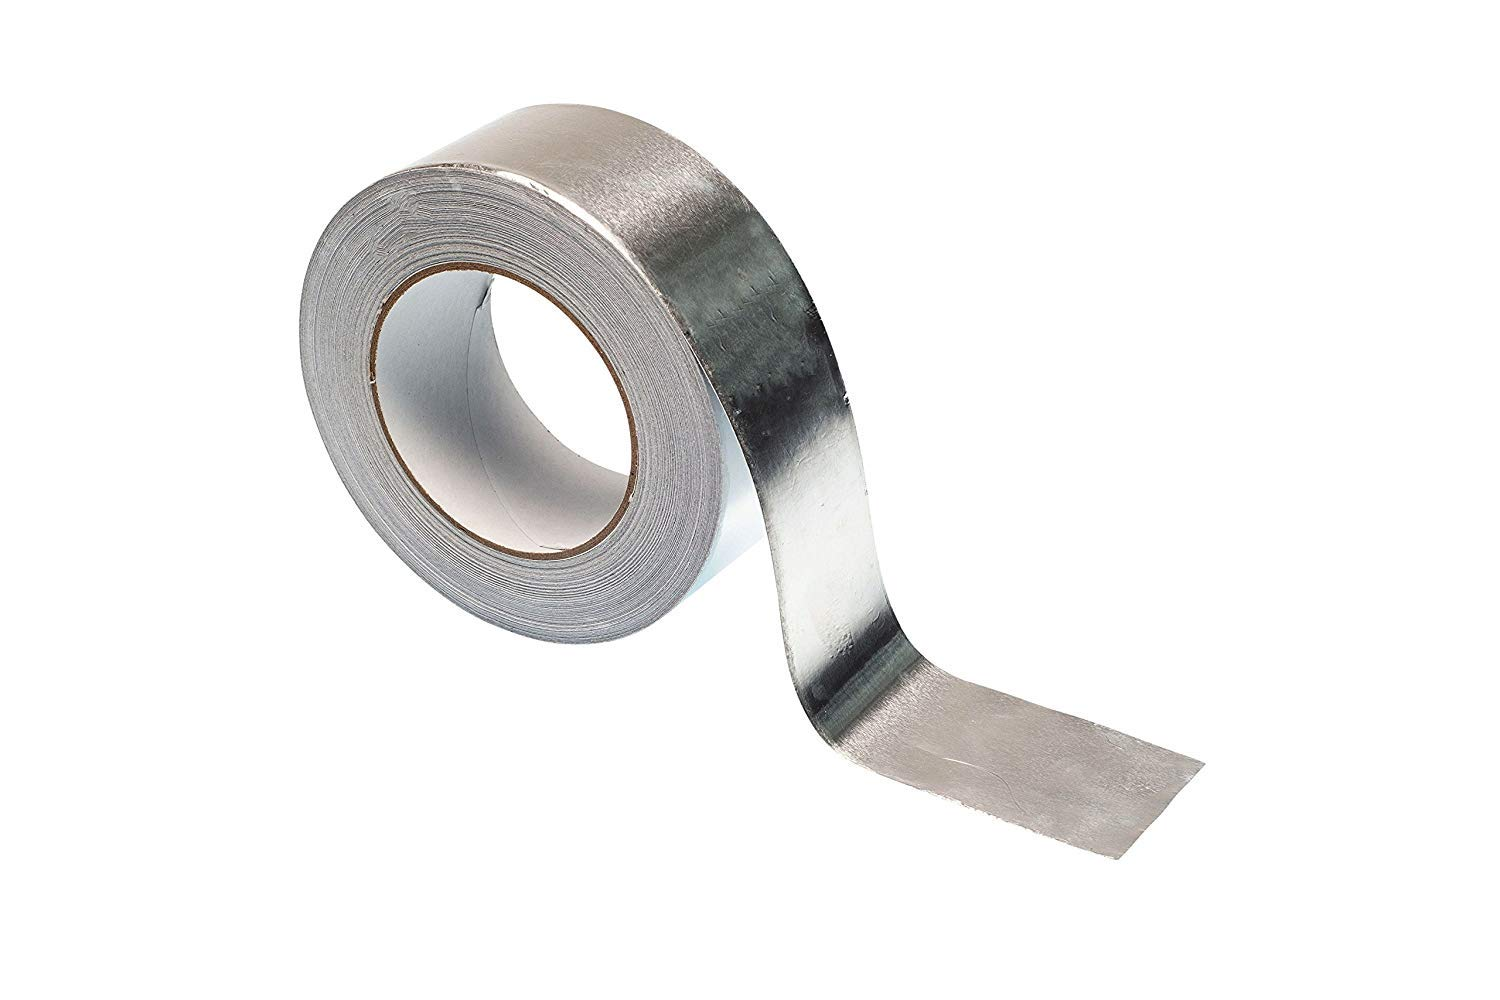 3M 3311 Silver Aluminum Foil Tape - 2 in. x 5 yd. Vapor Resistant Rubber Adhesive Foil Tape Roll. Adhesives and Tapes